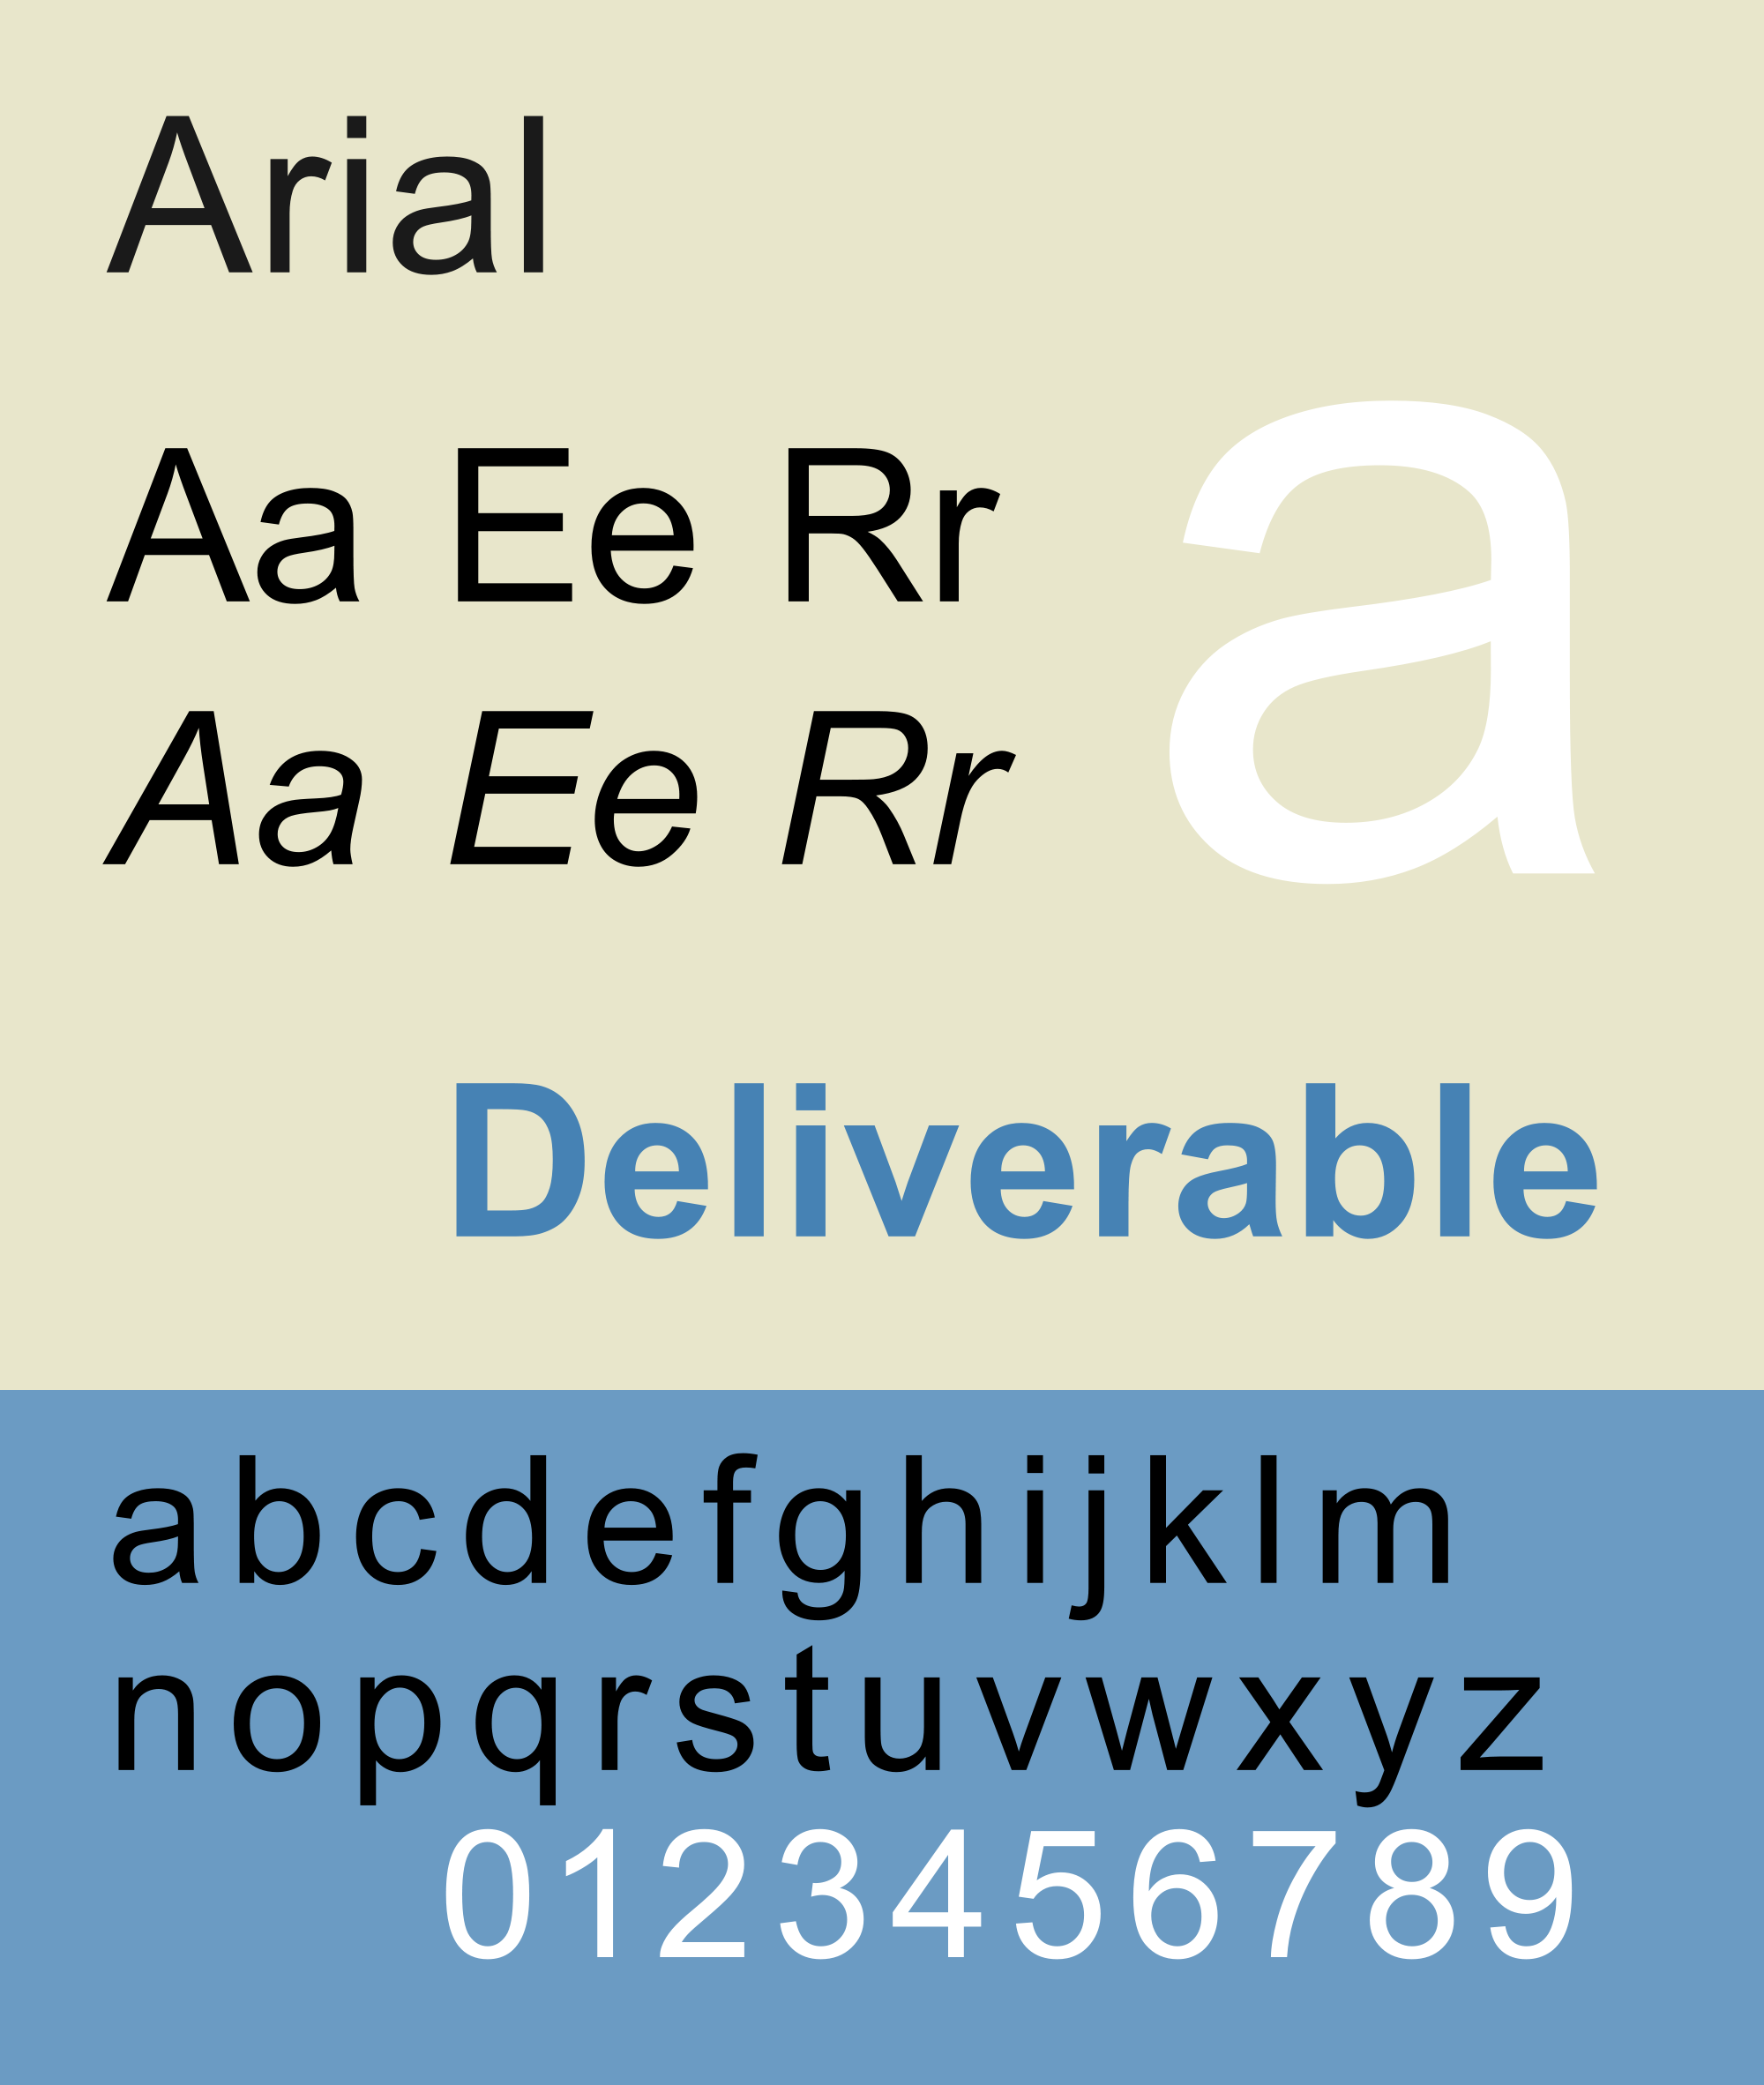 25 most used typefaces in advertising: Arial